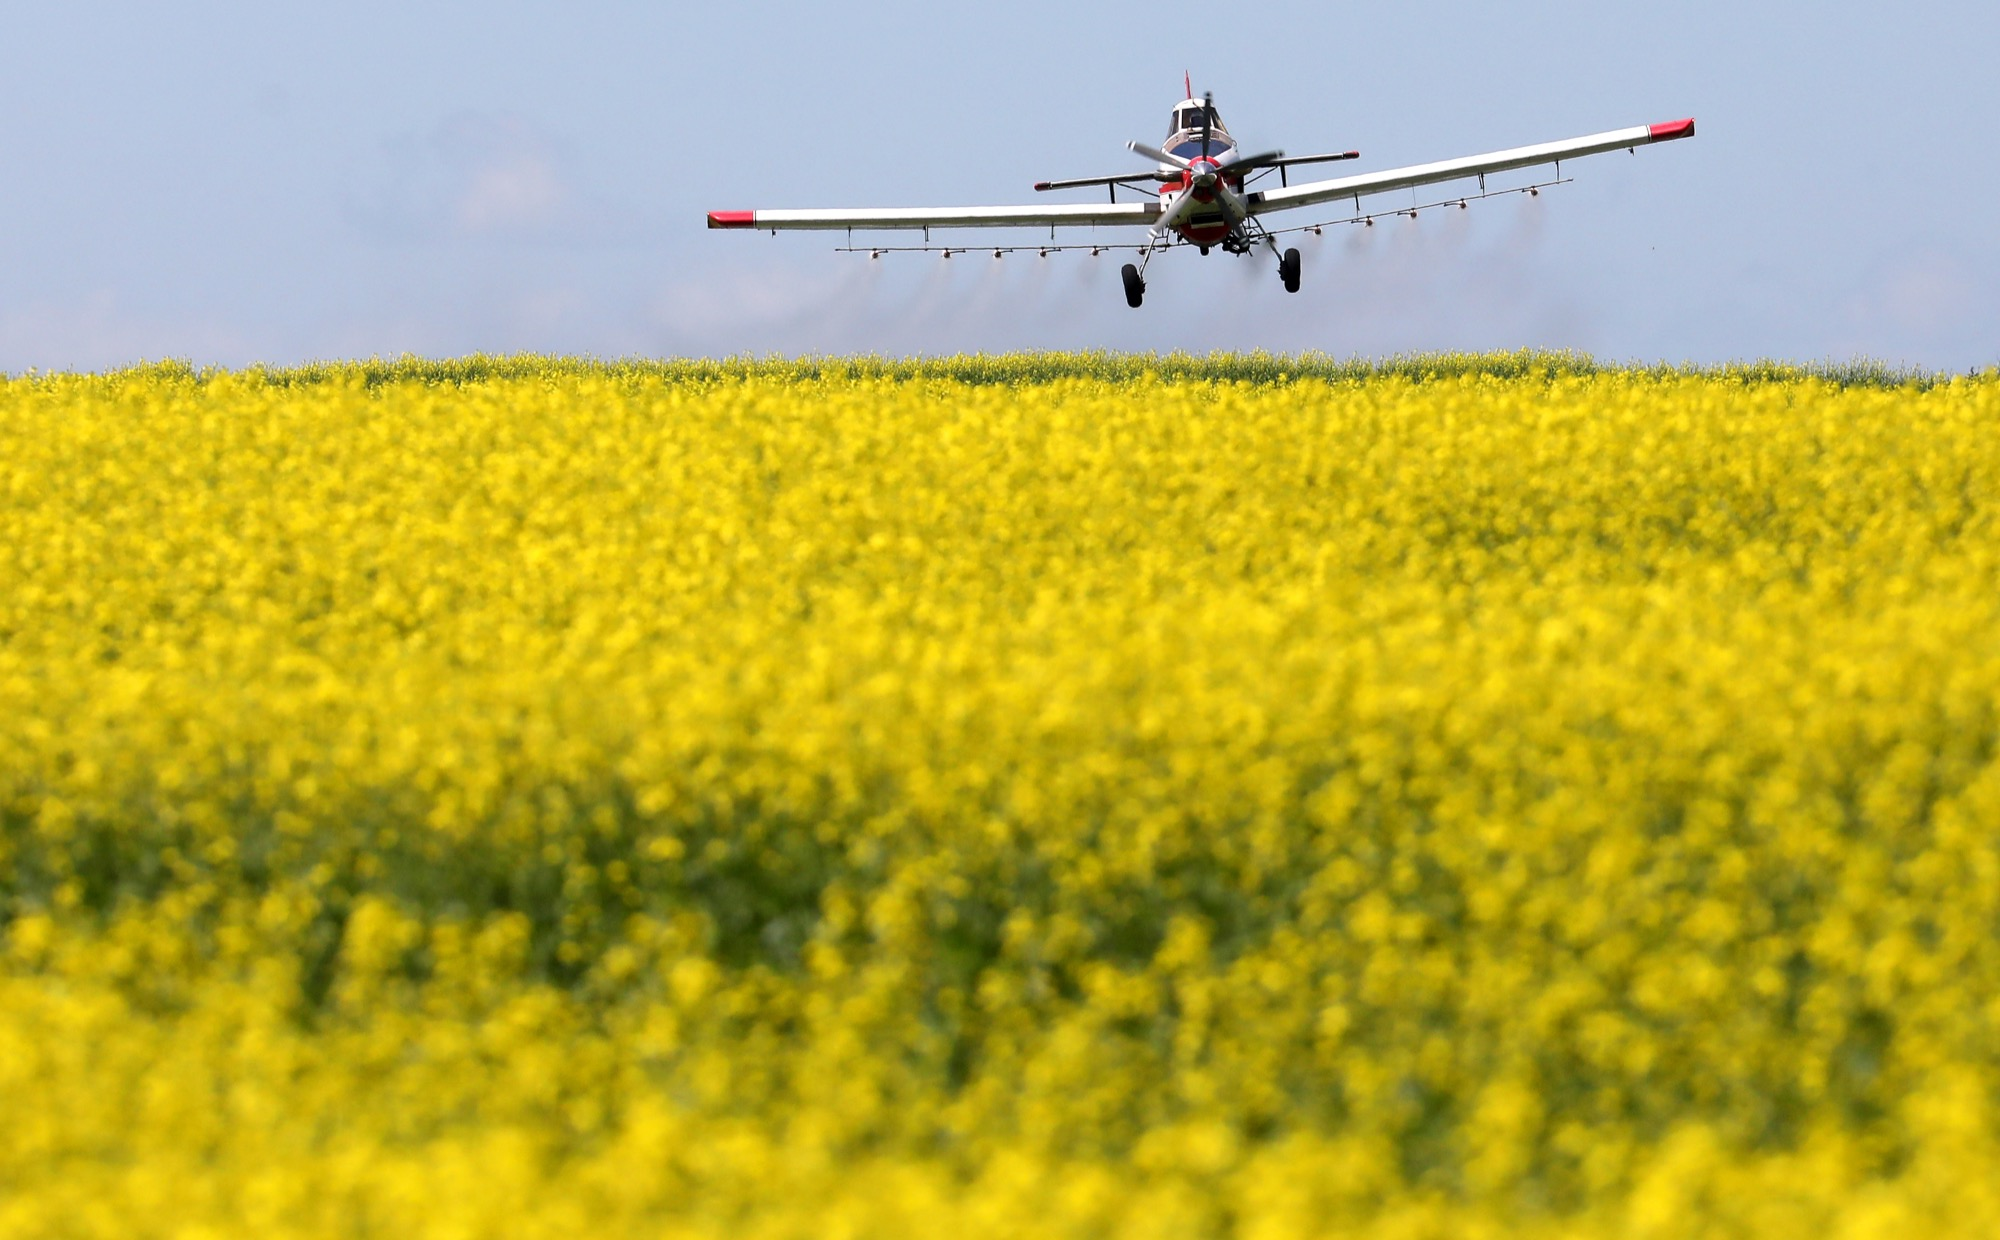 Canadian farmers need access to global markets for products such as canola. Brandon Sun files